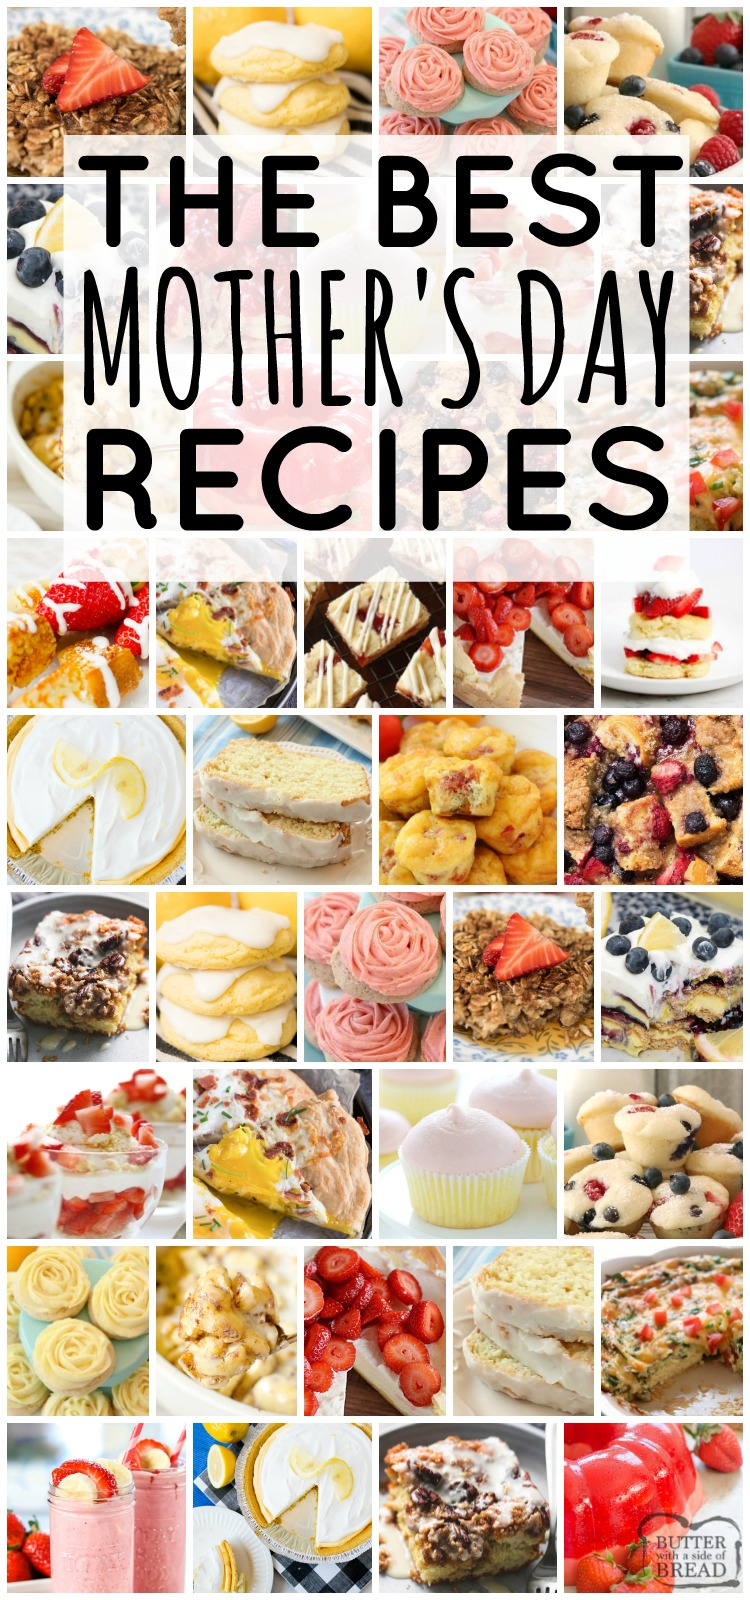 Mother's Day recipes perfect for brunch! Everything from spinach quiche to lemon ice box pie- tons of recipes with fresh berries and lemon. Easy to make, crowd pleasing recipes for Mother's Day.